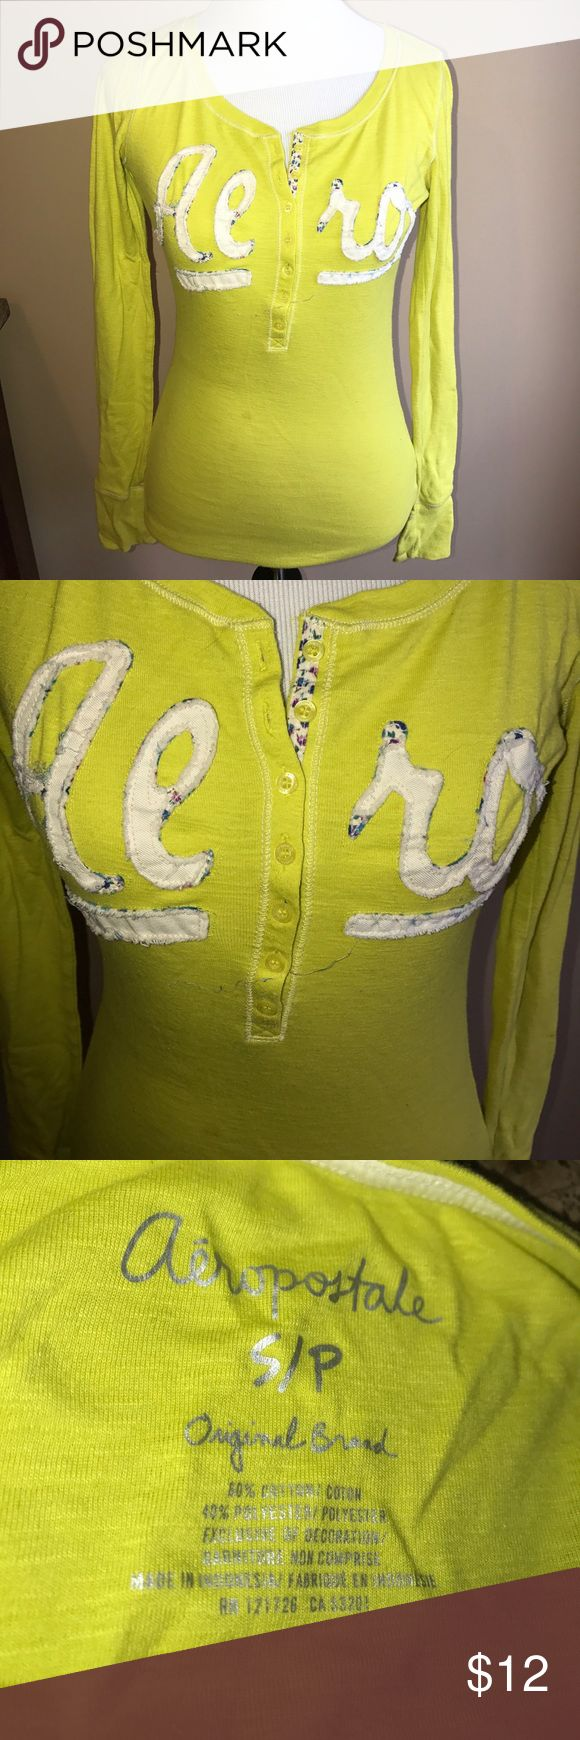 EUC! Aeropostale Long Sleeve T-shirt lime Sz S Excellent used condition! Aeropostale Long sleeve T-shirt in lime green. Comes from a smoke free and pet free home 🏡 Aeropostale Tops Tees - Long Sleeve